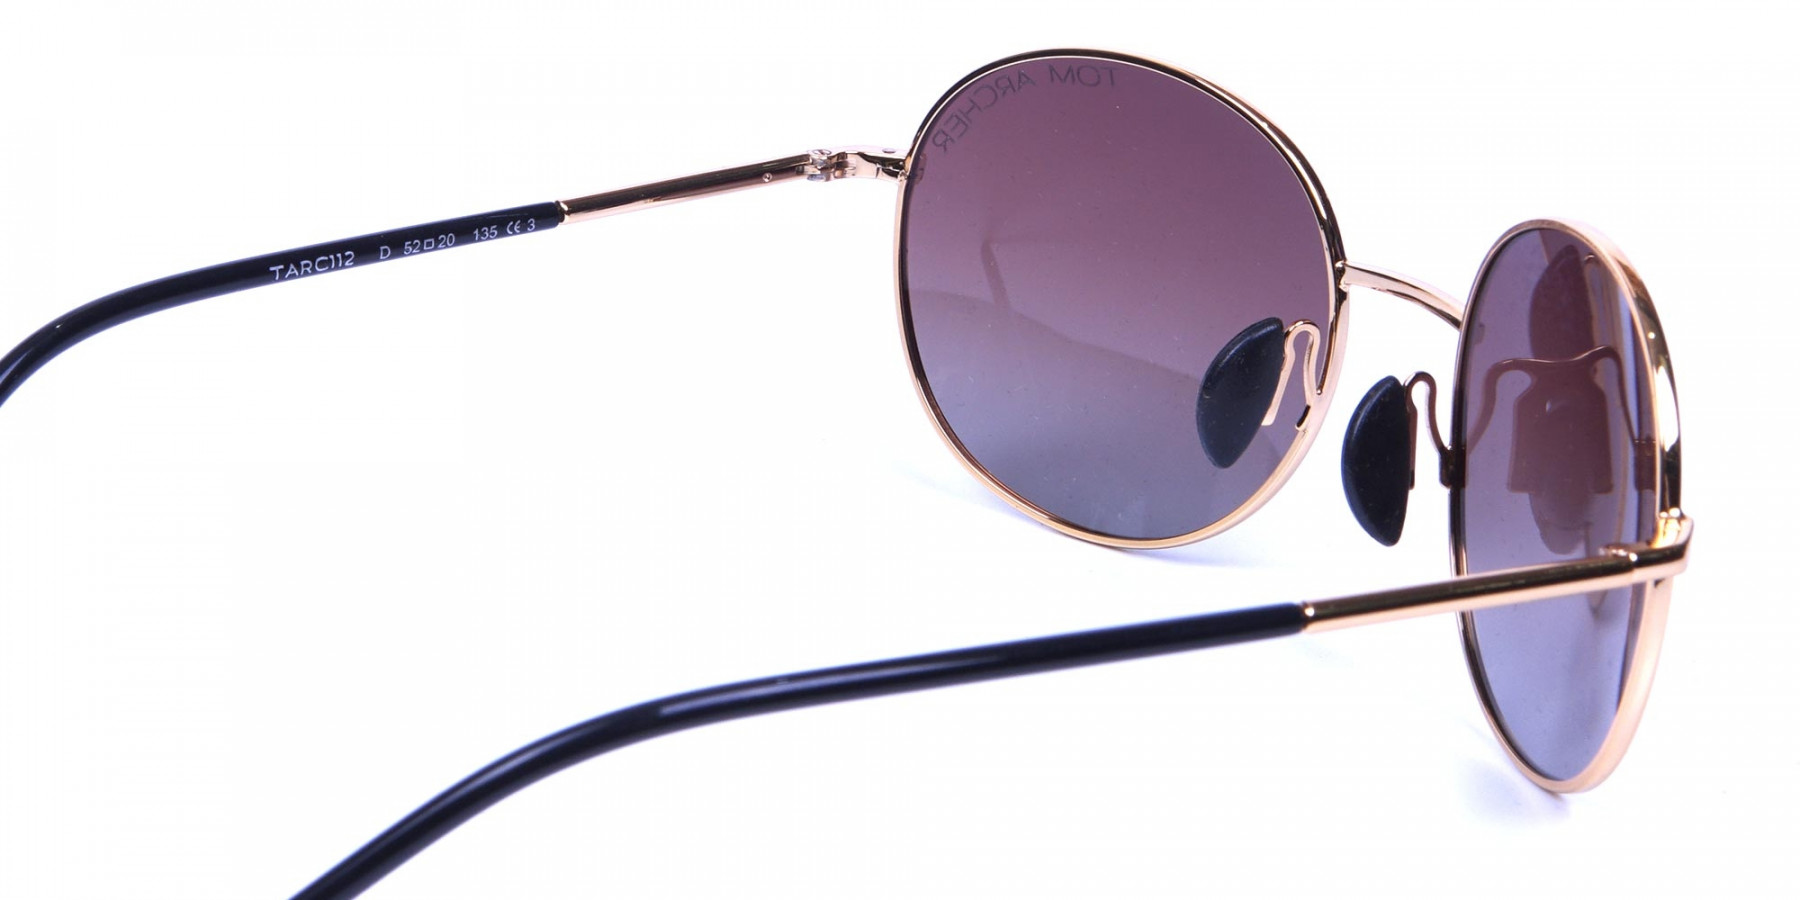 Gold Frame Round Sunglasses with Brown Lens -2